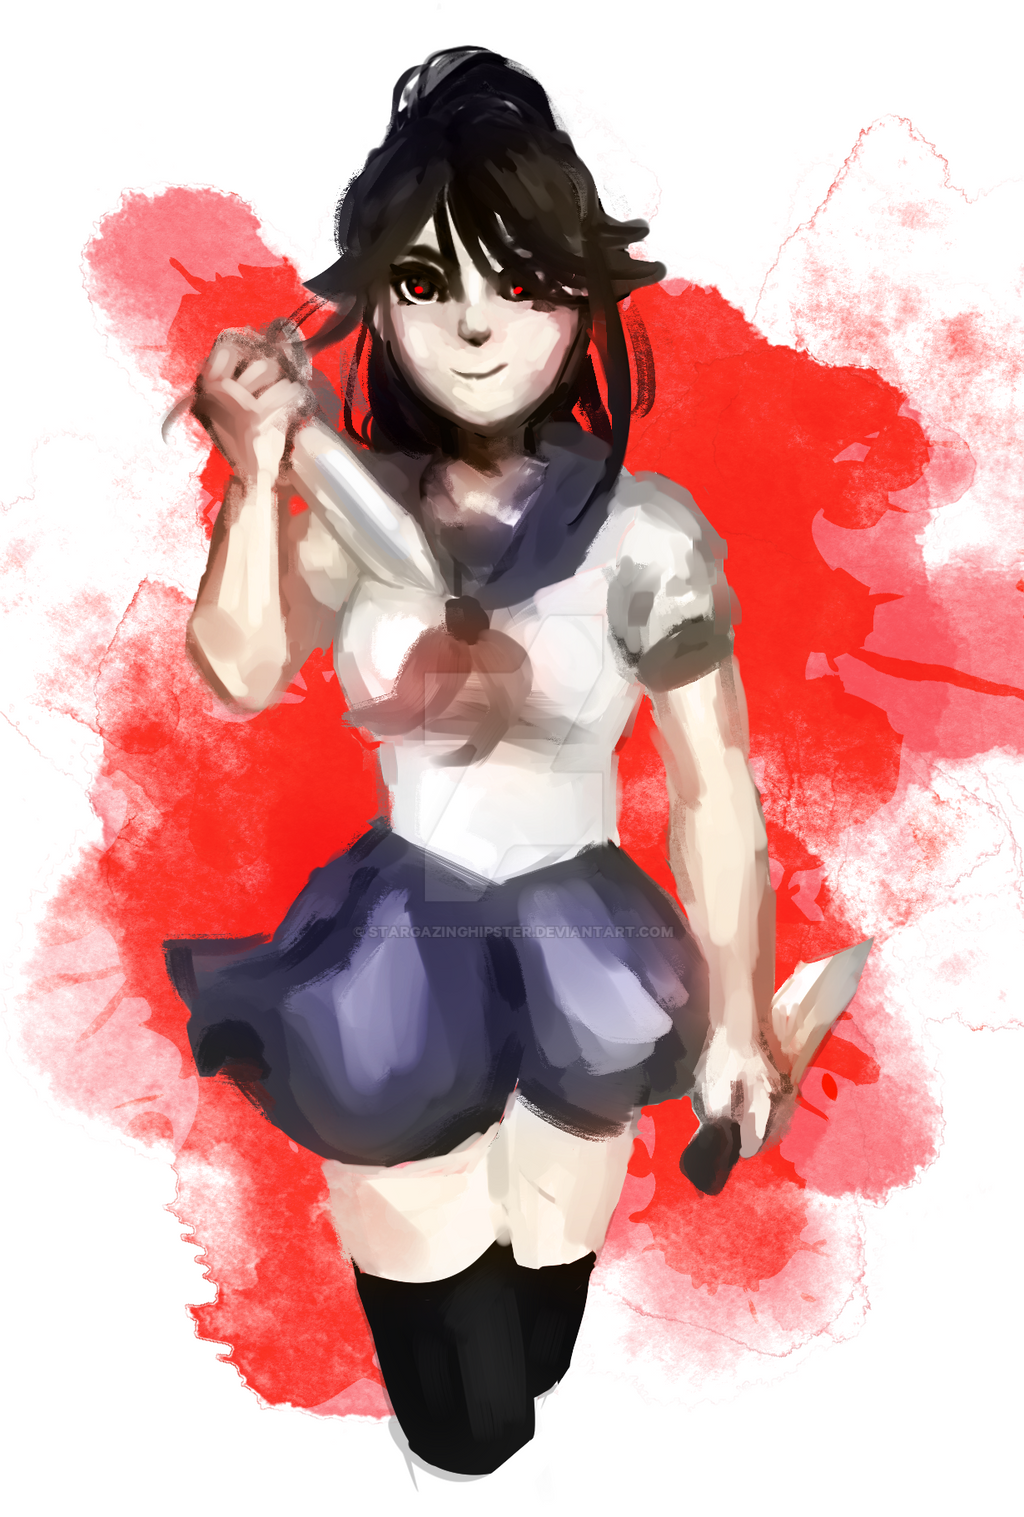 Don't Mess With A Yandere by StarGazingHipster